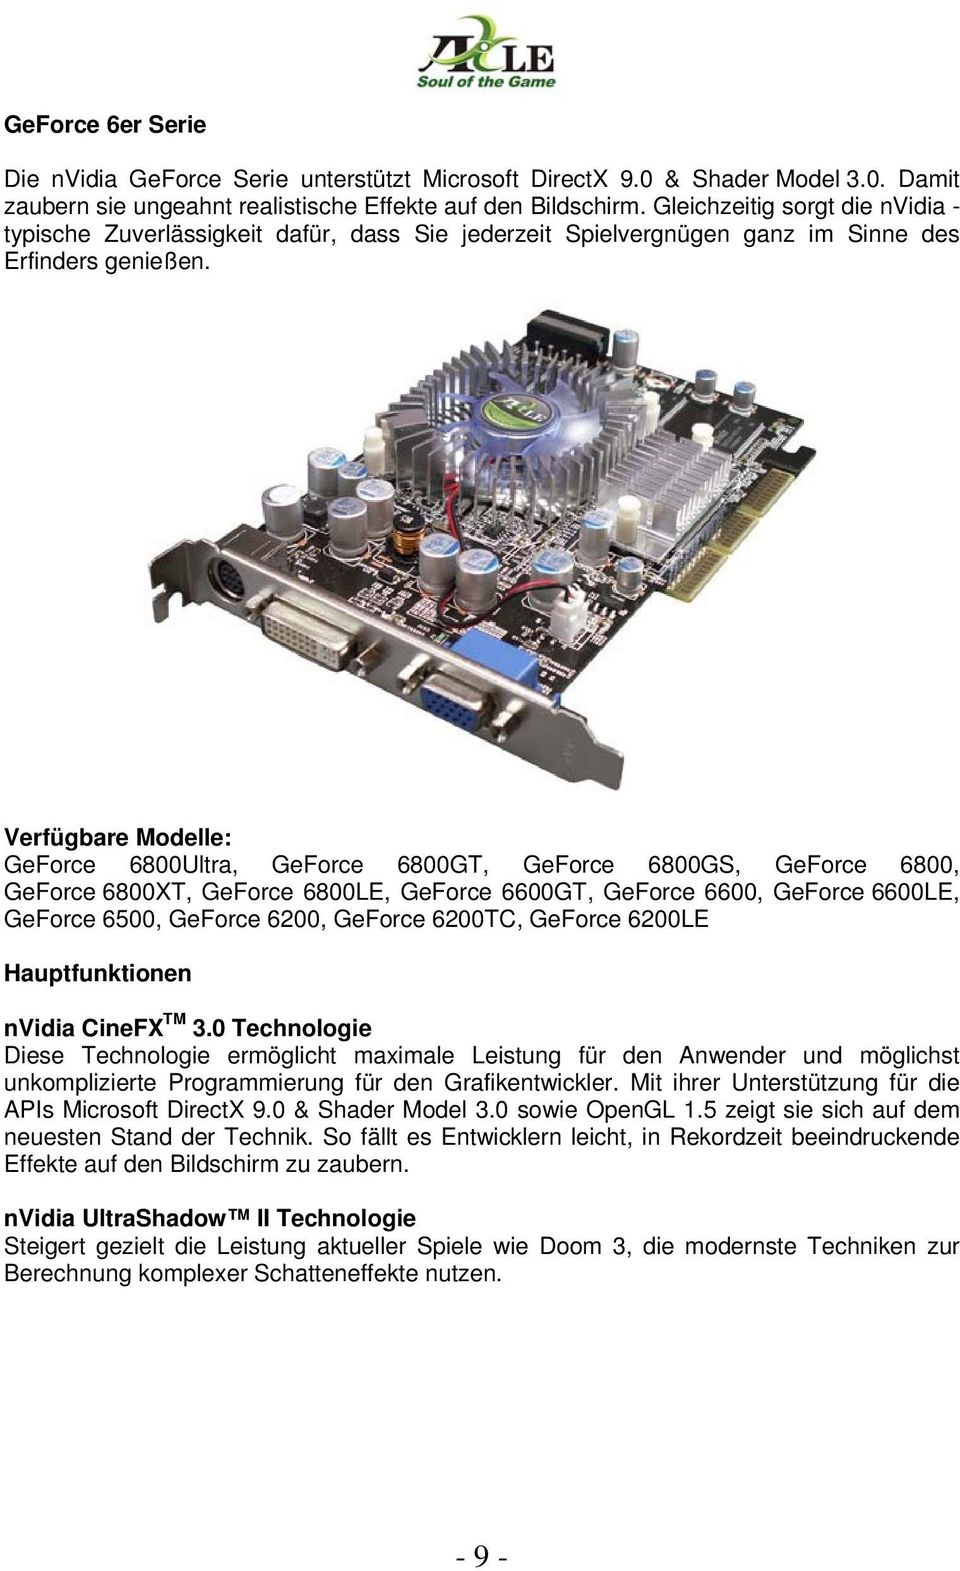 Verfügbare Modelle: GeForce 6800Ultra, GeForce 6800GT, GeForce 6800GS, GeForce 6800, GeForce 6800XT, GeForce 6800LE, GeForce 6600GT, GeForce 6600, GeForce 6600LE, GeForce 6500, GeForce 6200, GeForce